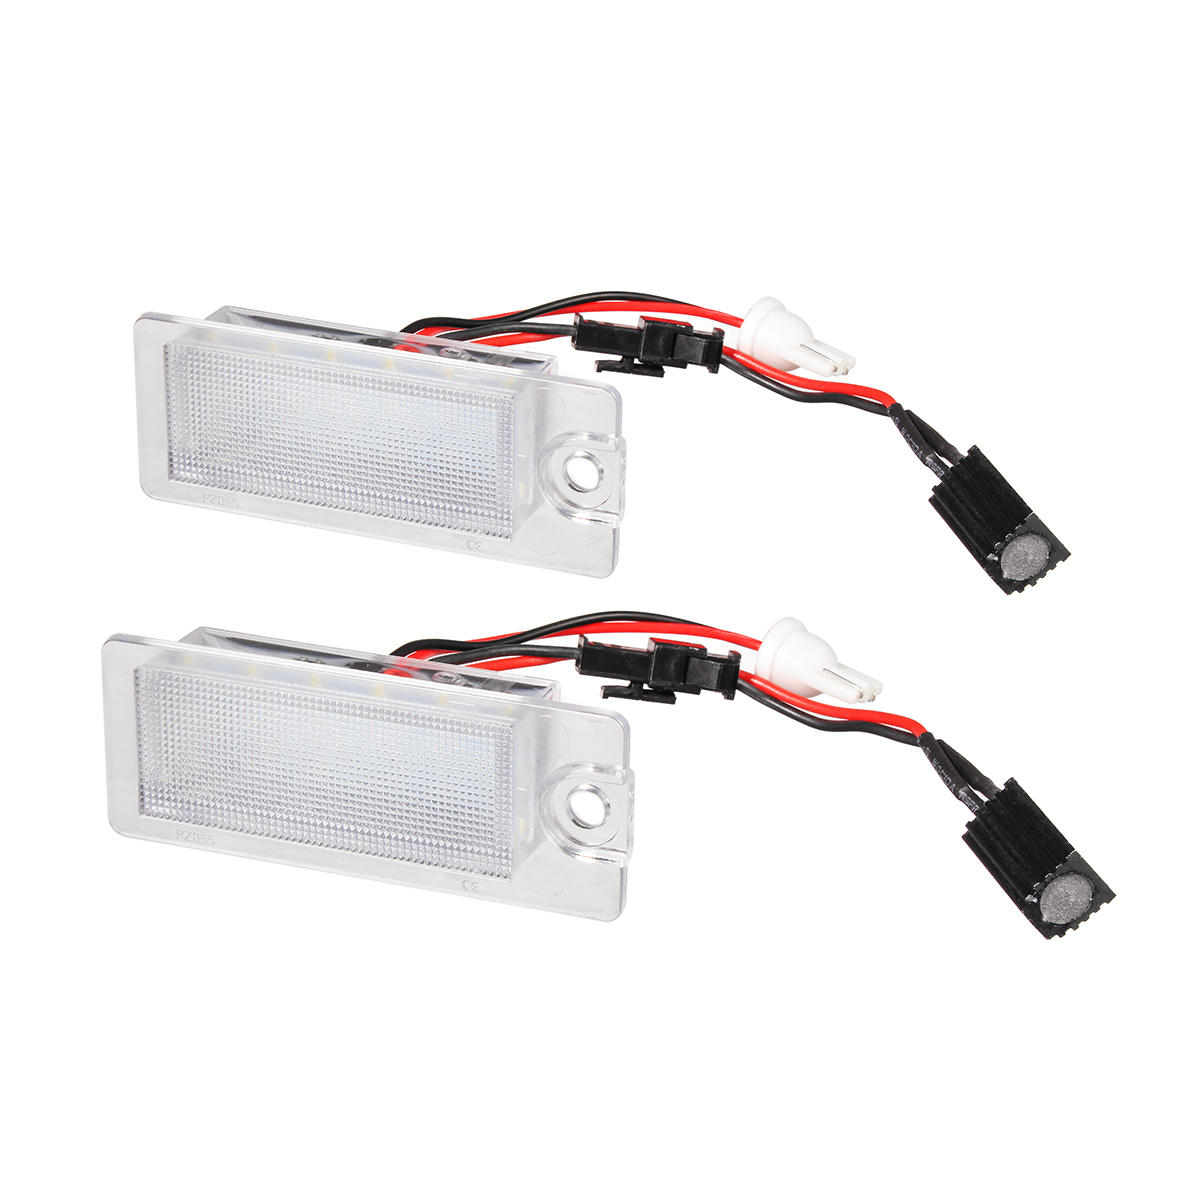 2Pcs 13.5V 2W 18-SMD LED Car Number License Plate Lights White Lamp for Volvo S80 V70 S60 XC70 XC90